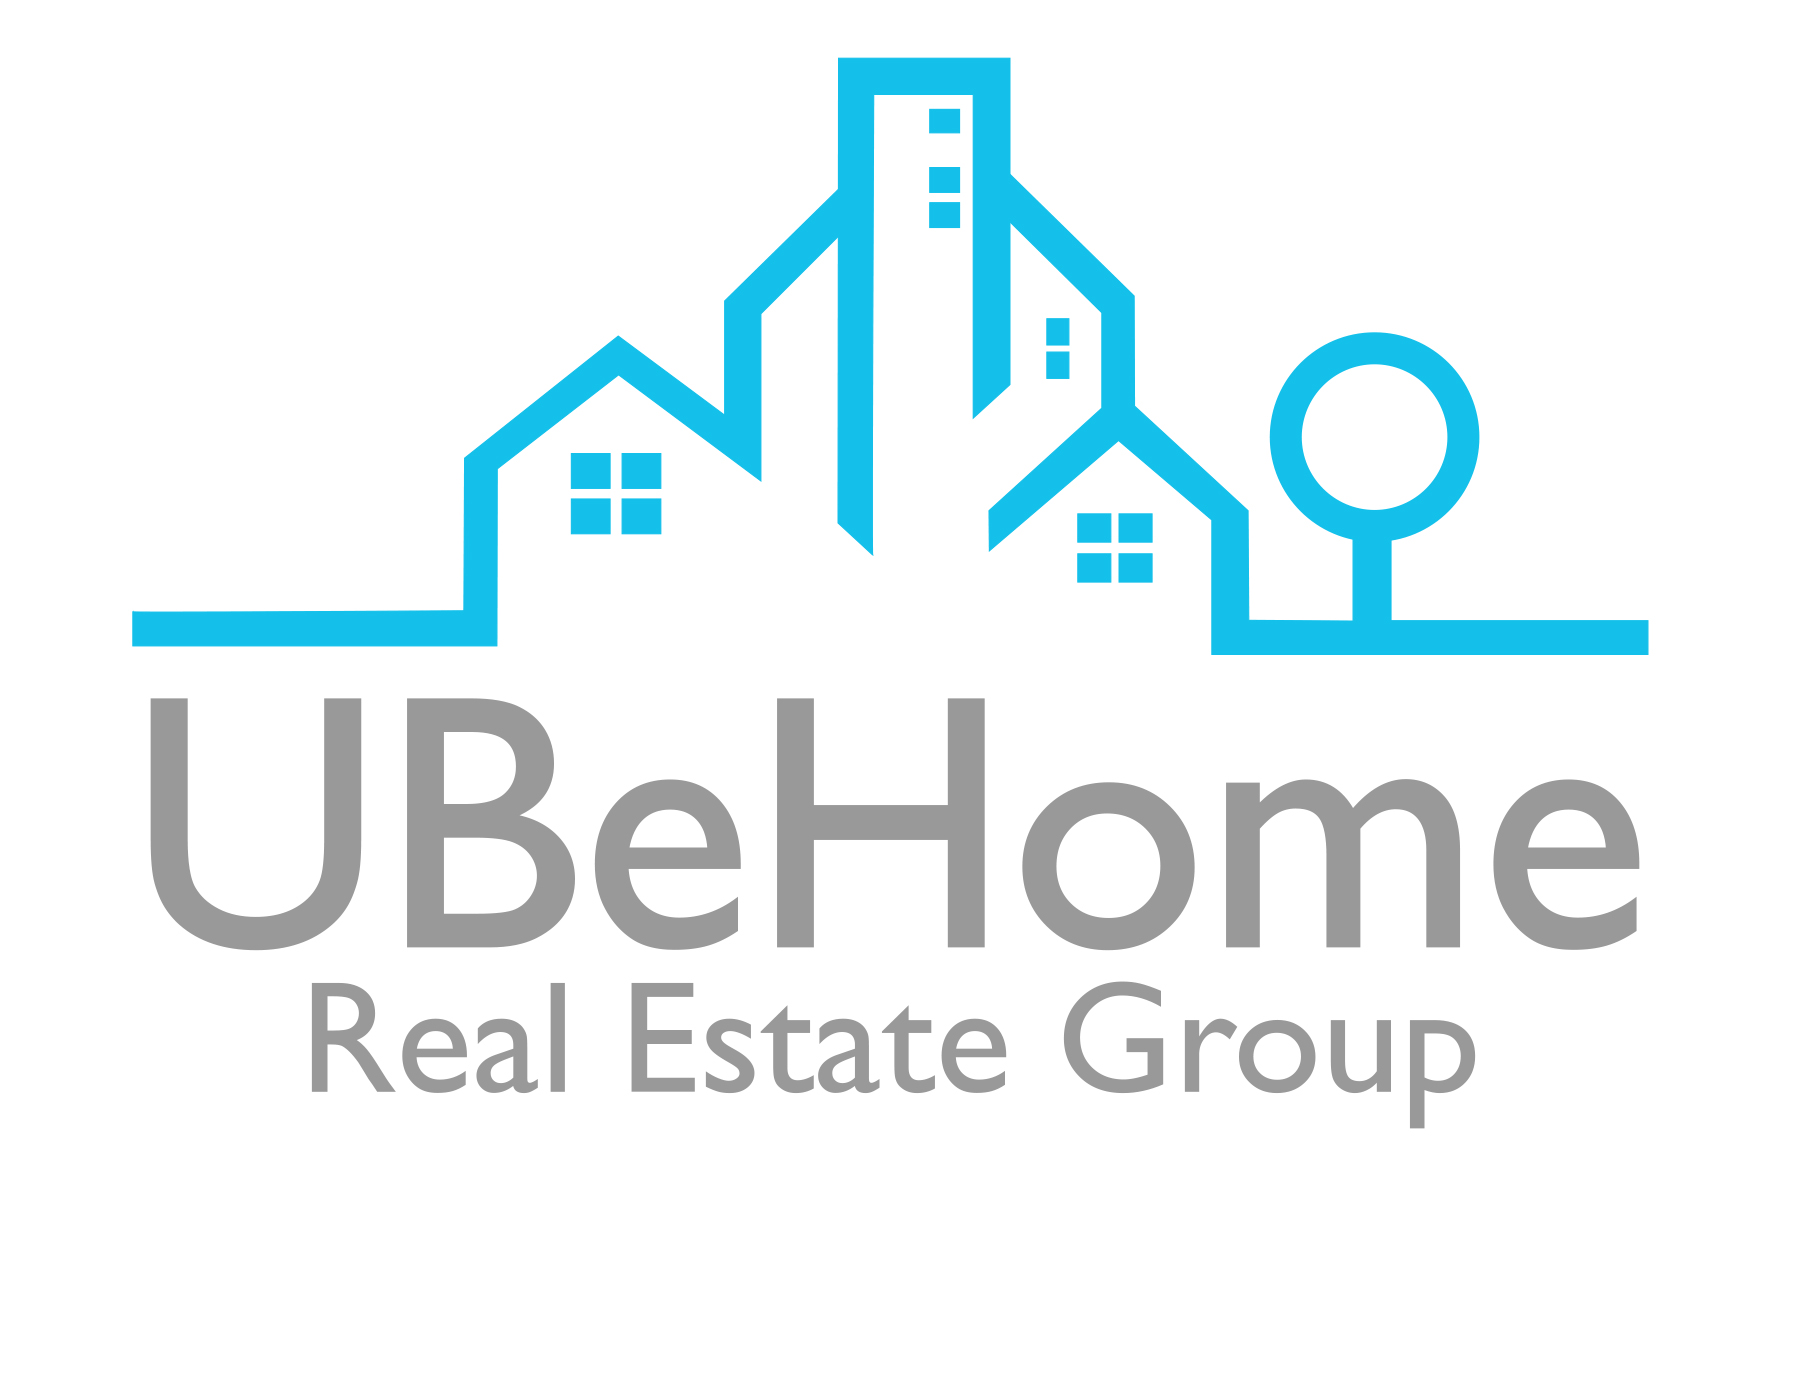 UBeHome Real Estate Group